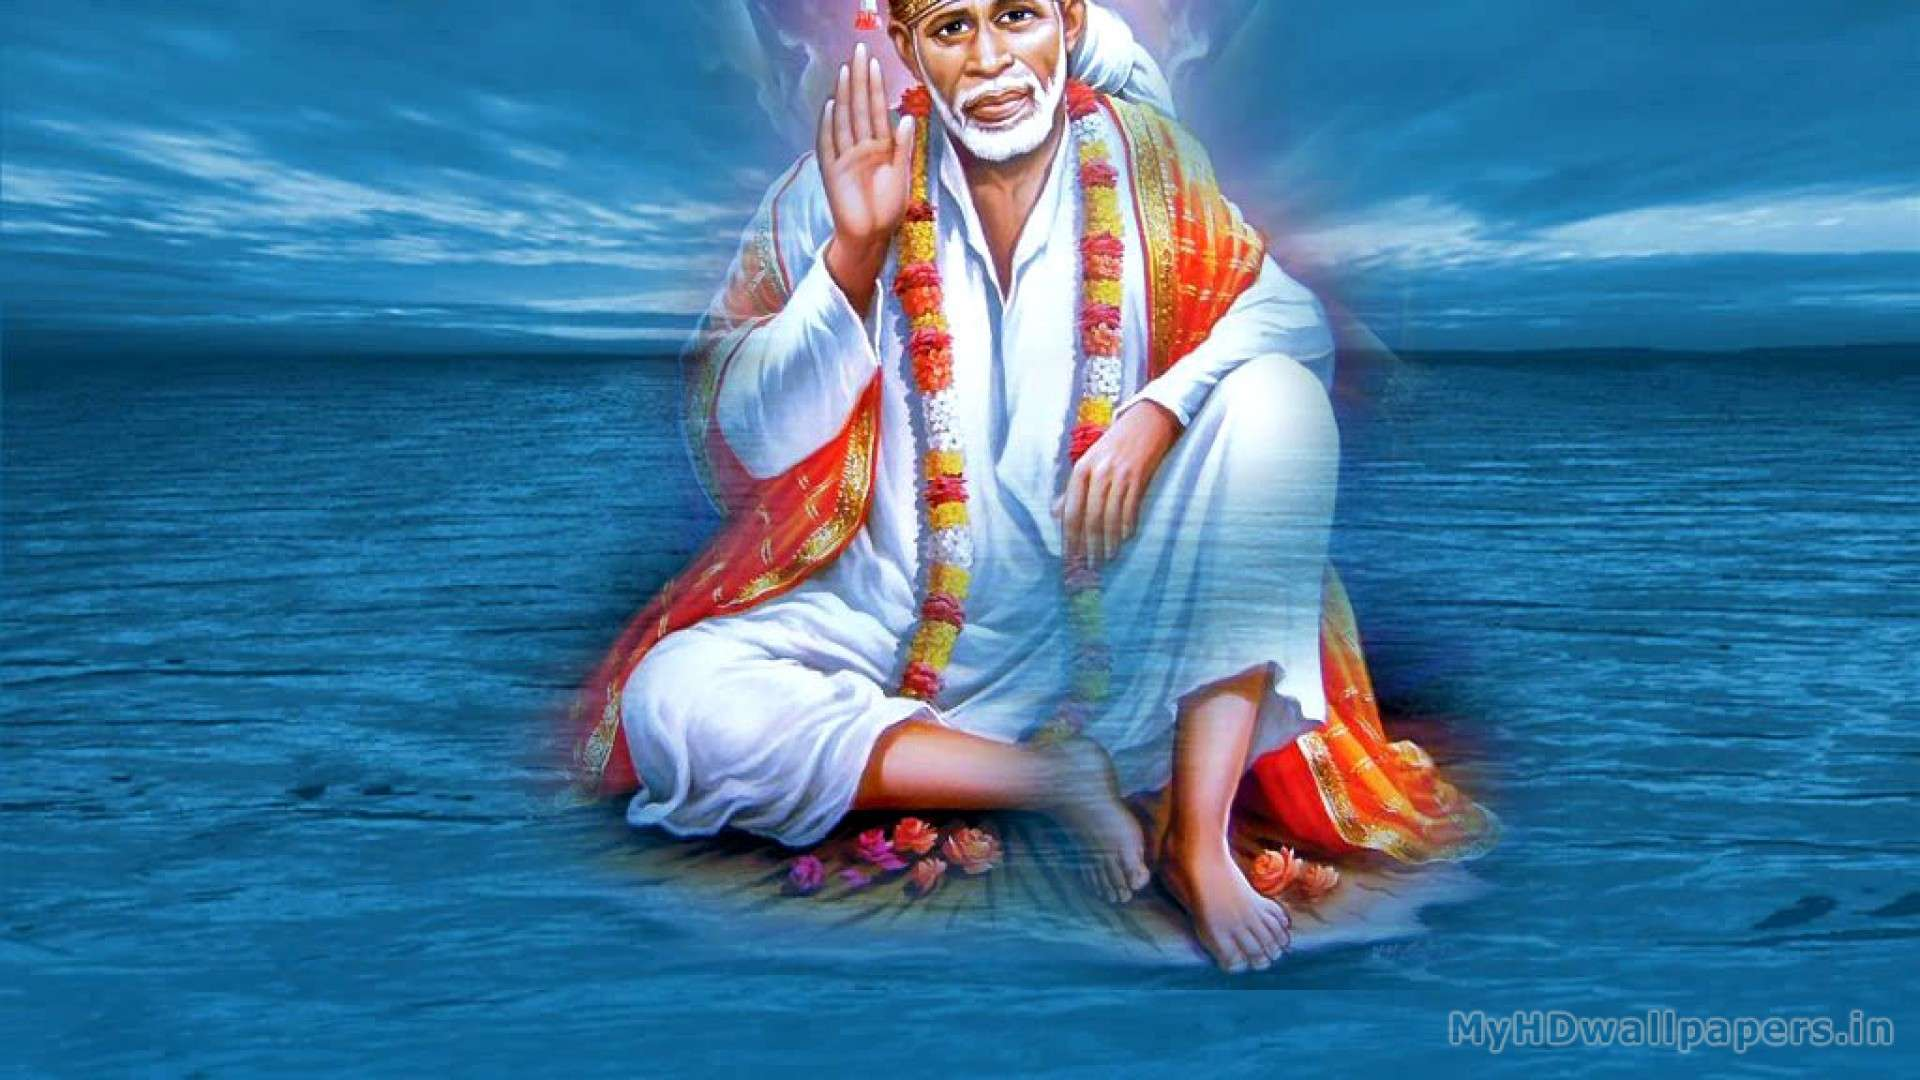 Download Sai Baba Latest Wallpapers Gallery: Sai Baba Hd Wallpapers For Pc : Hd Wallpapers